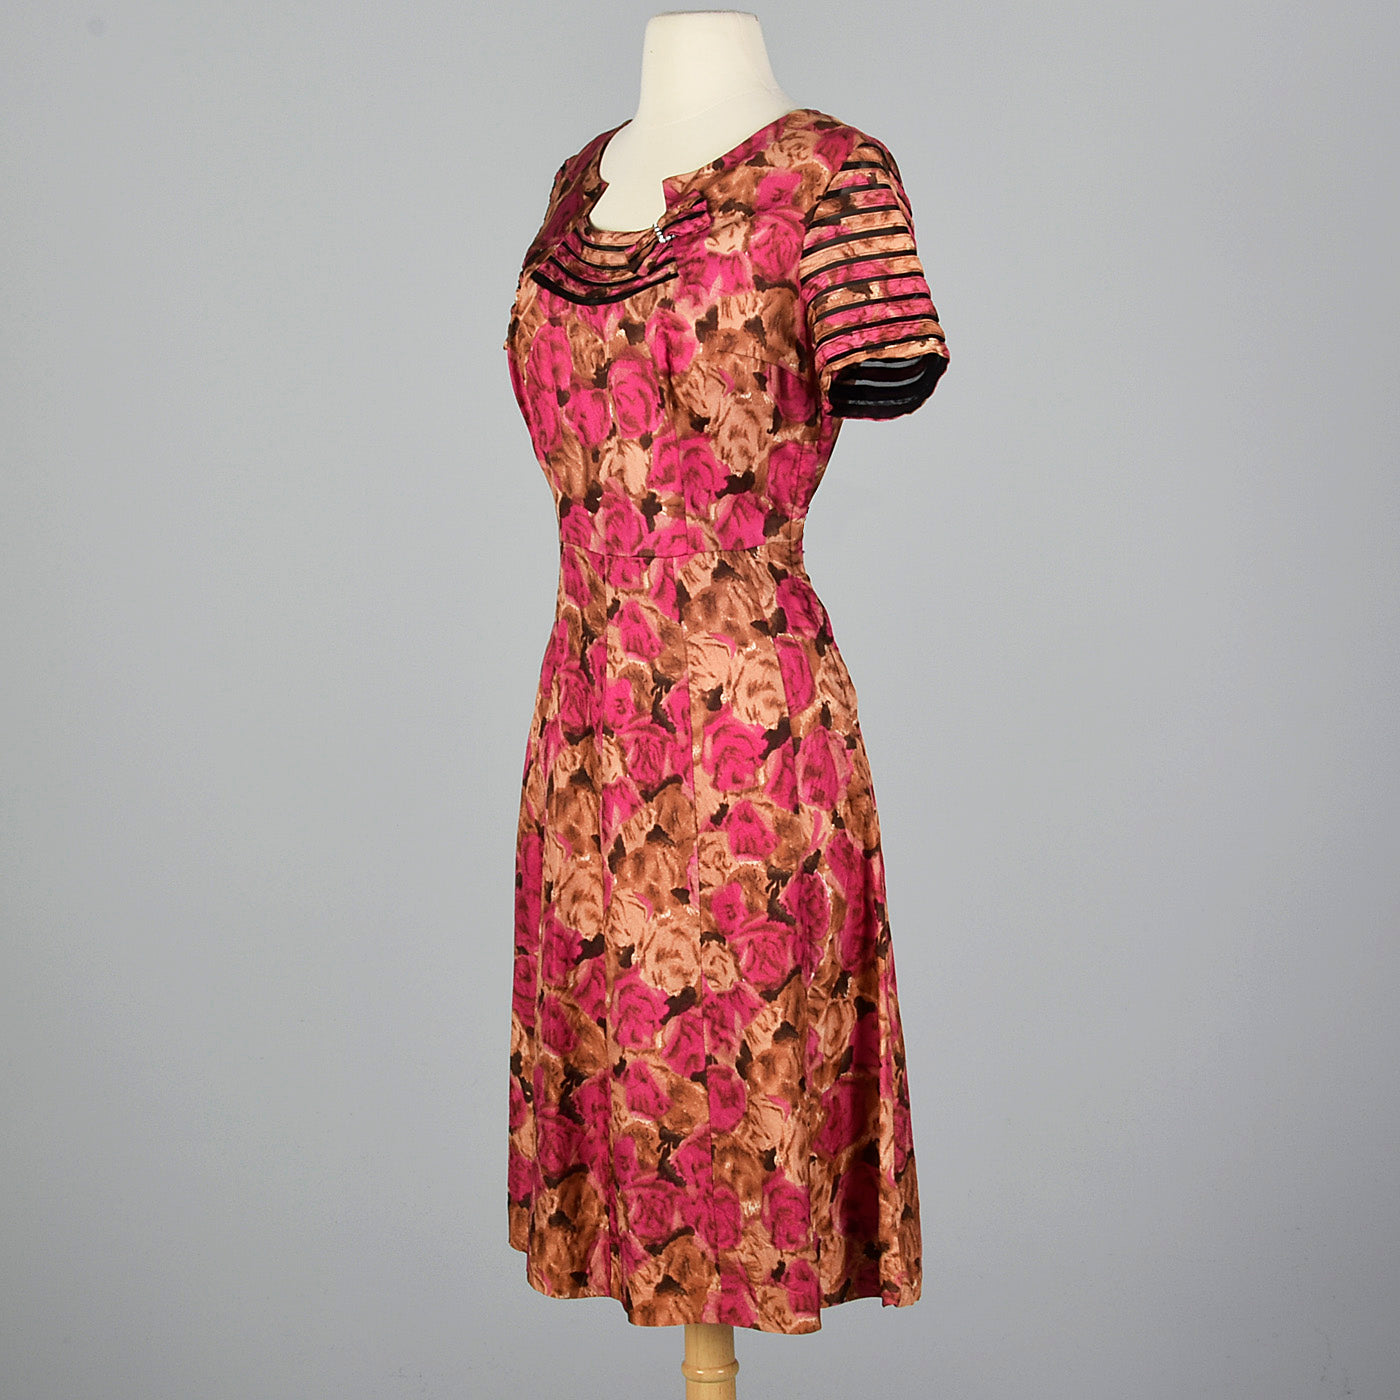 1950s Floral Dress with Sheer Detail Collar and Sleeves